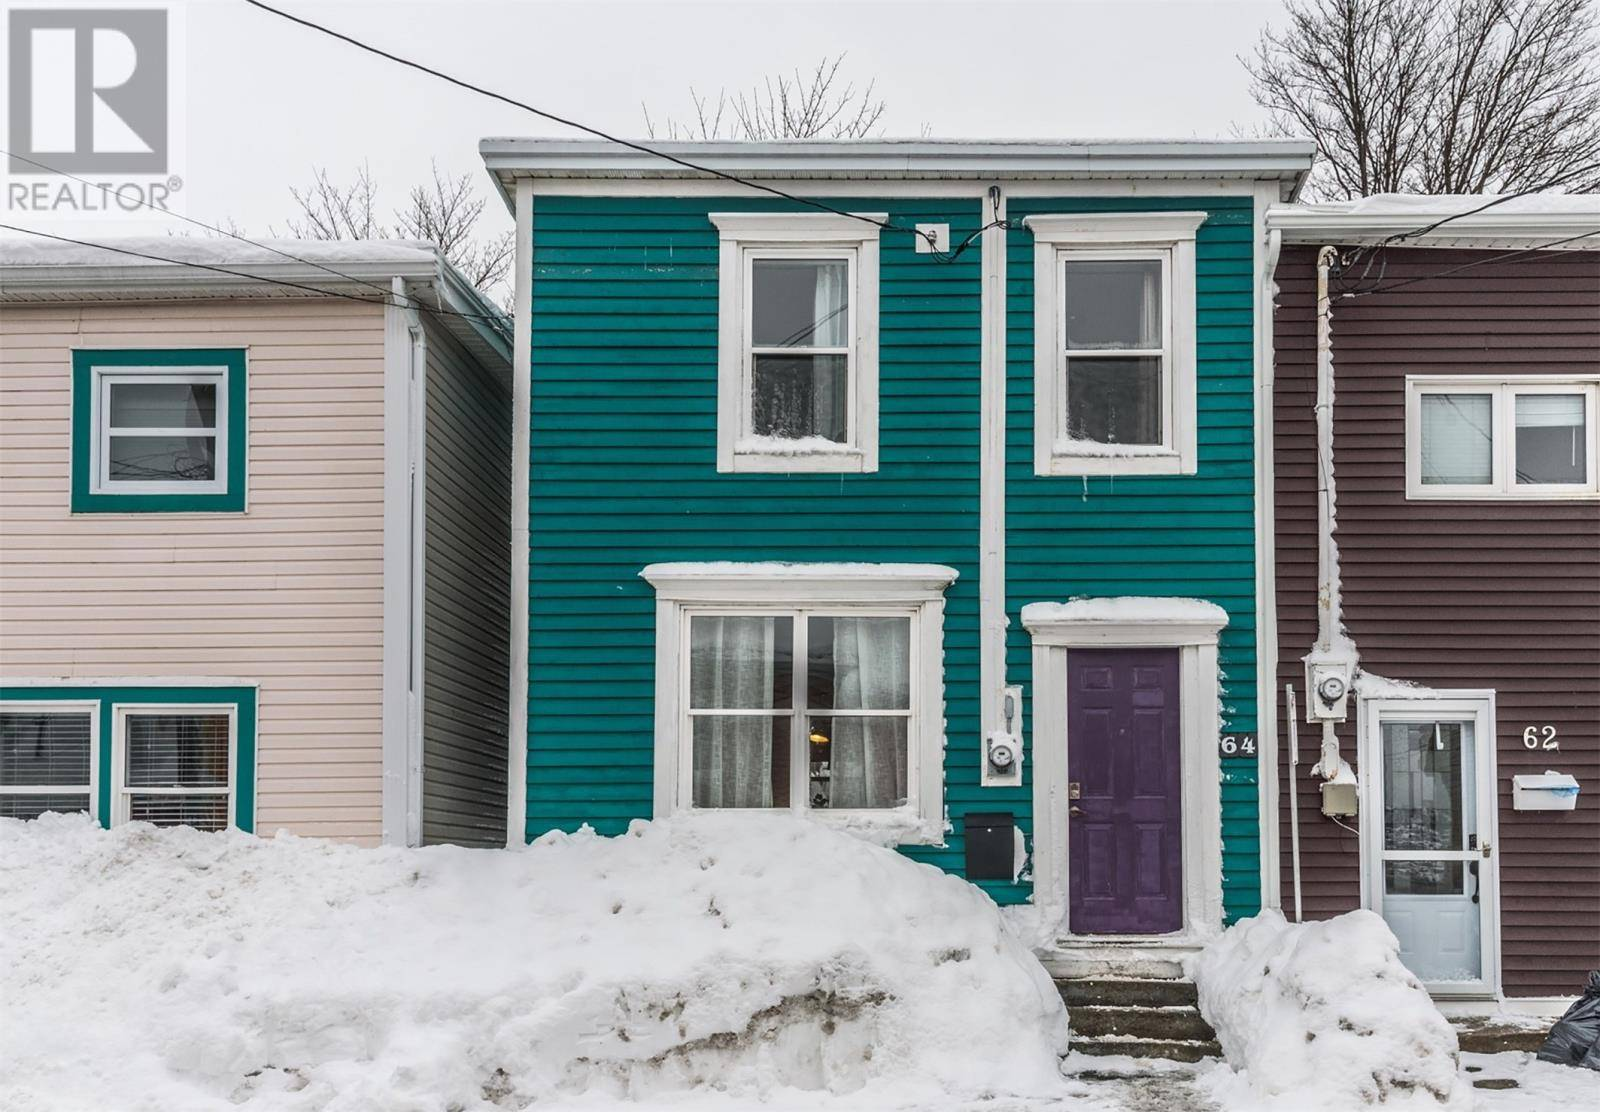 House for sale at 64 Cabot St St. John's Newfoundland - MLS: 1209515